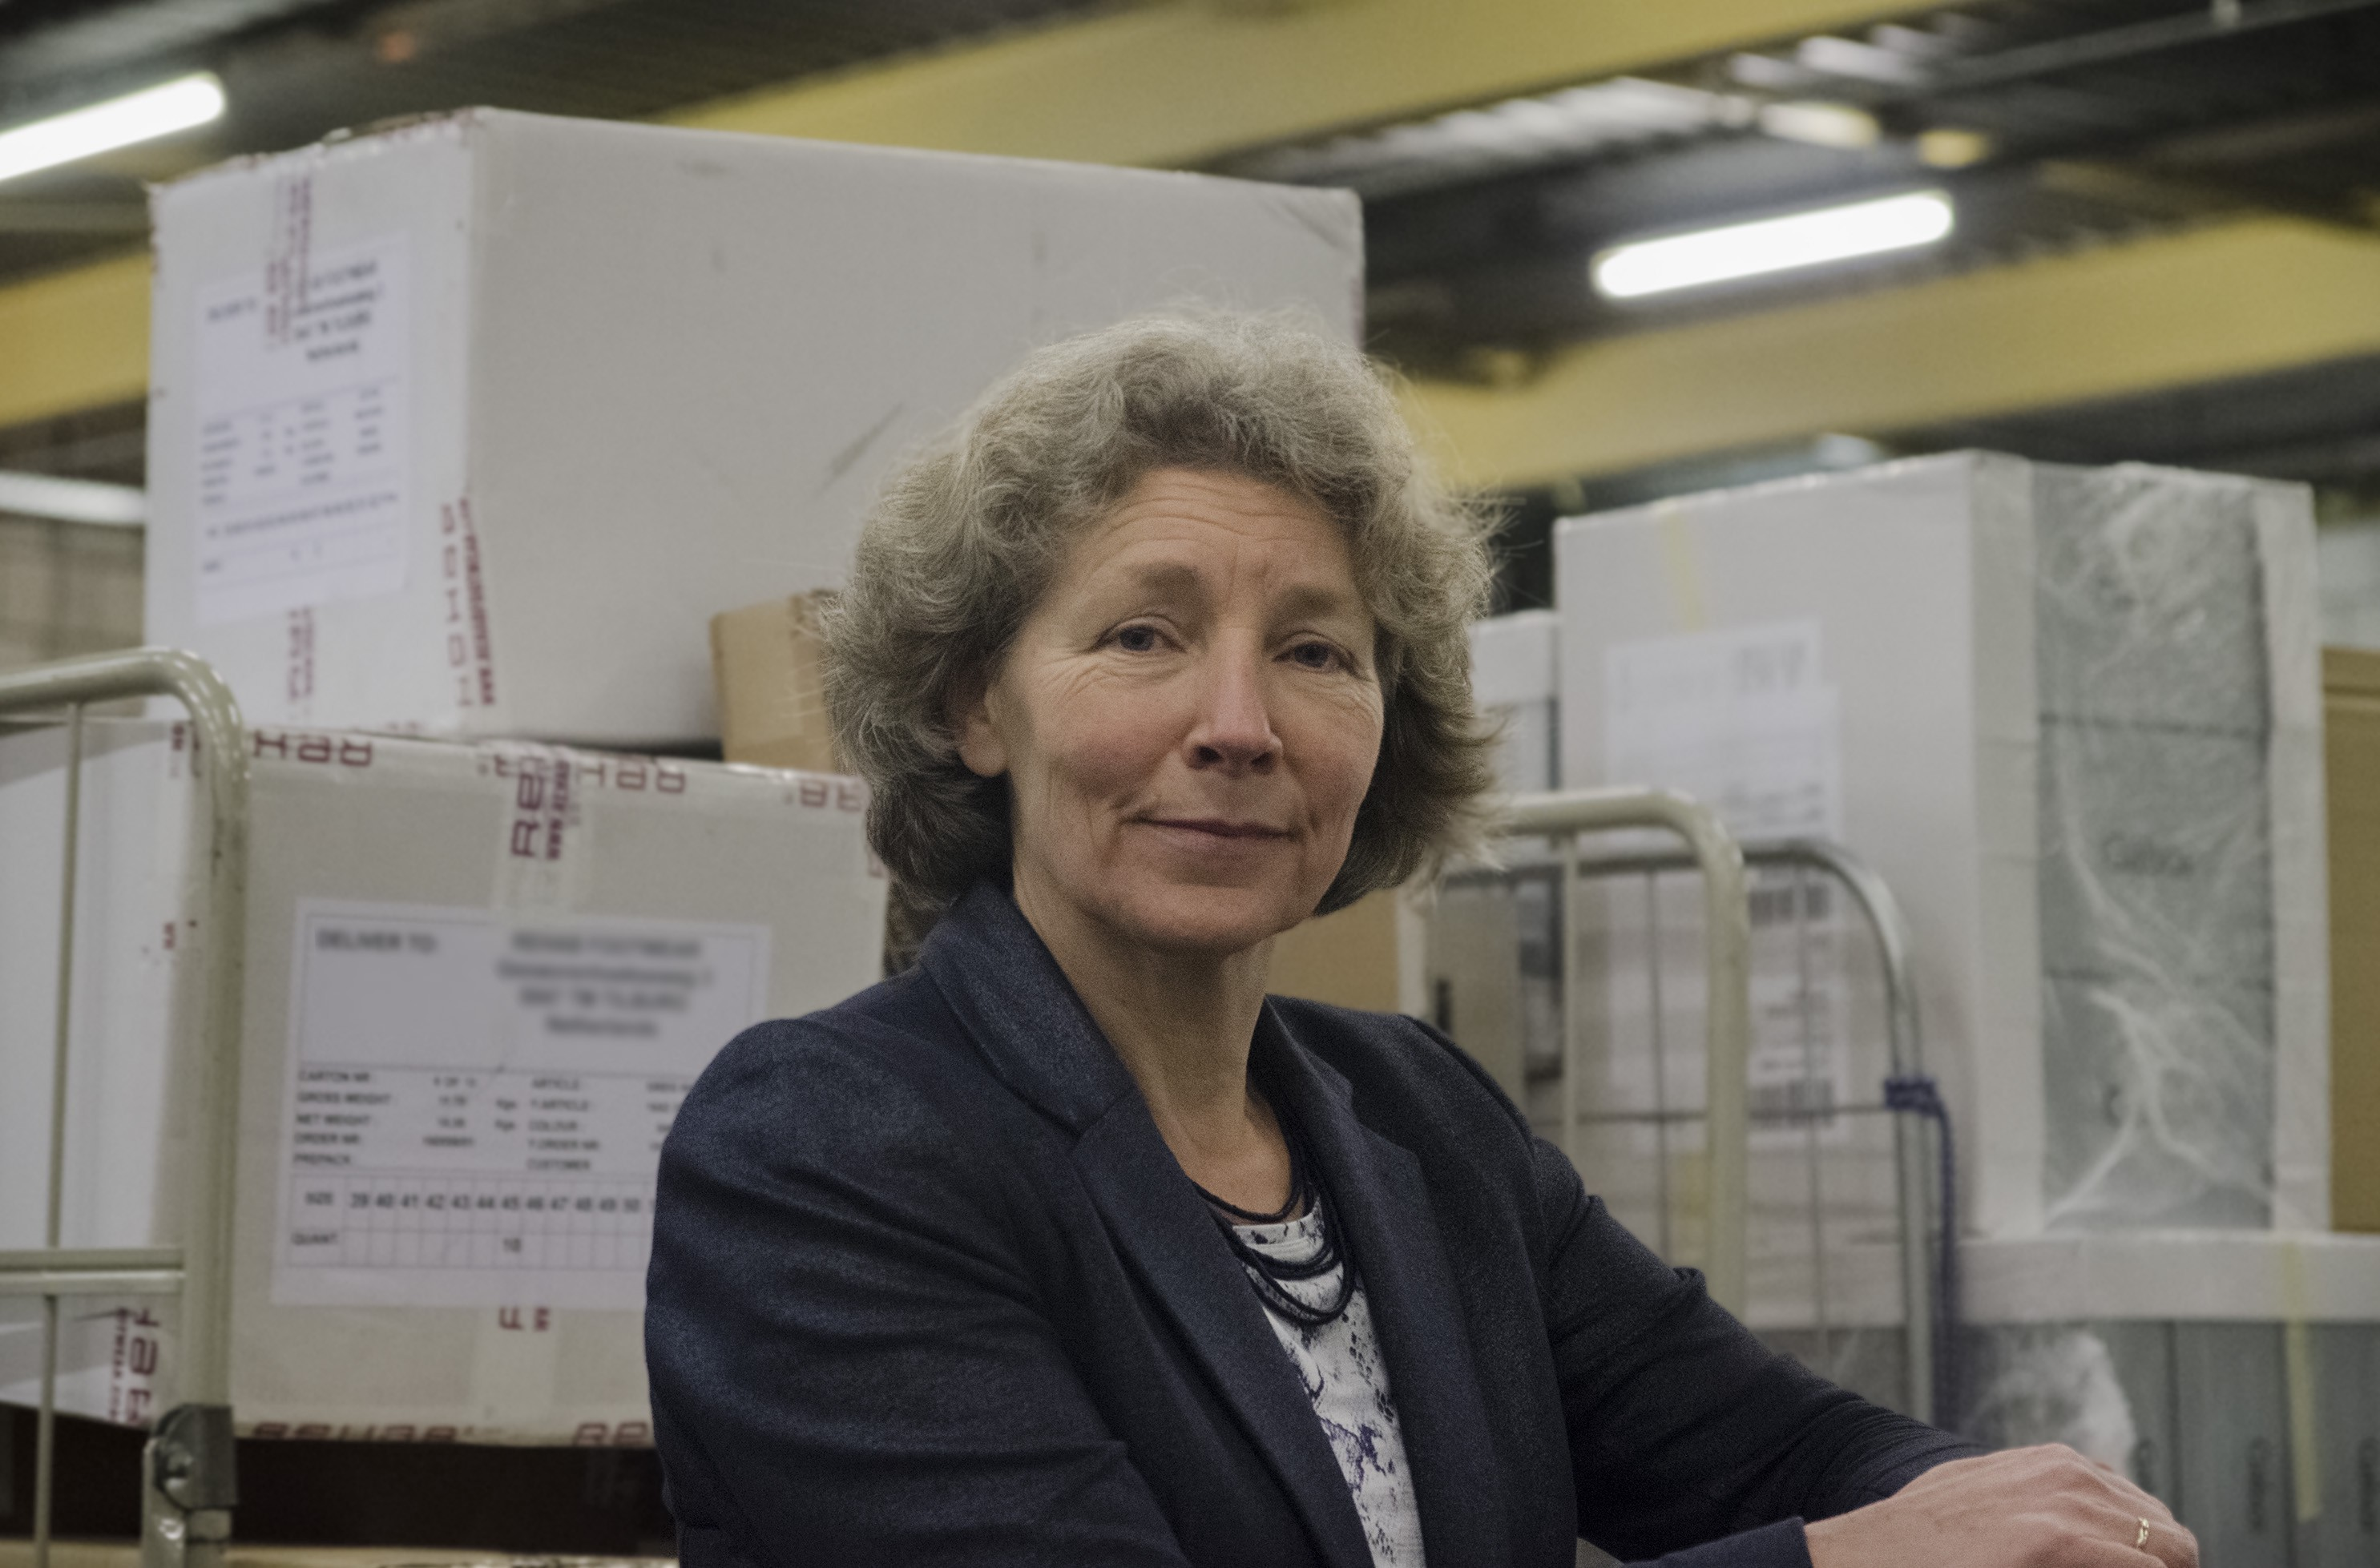 A photograph of Birgit Hendriks, who launched the Binnenstadservice logistics hubs in Nijmegen.